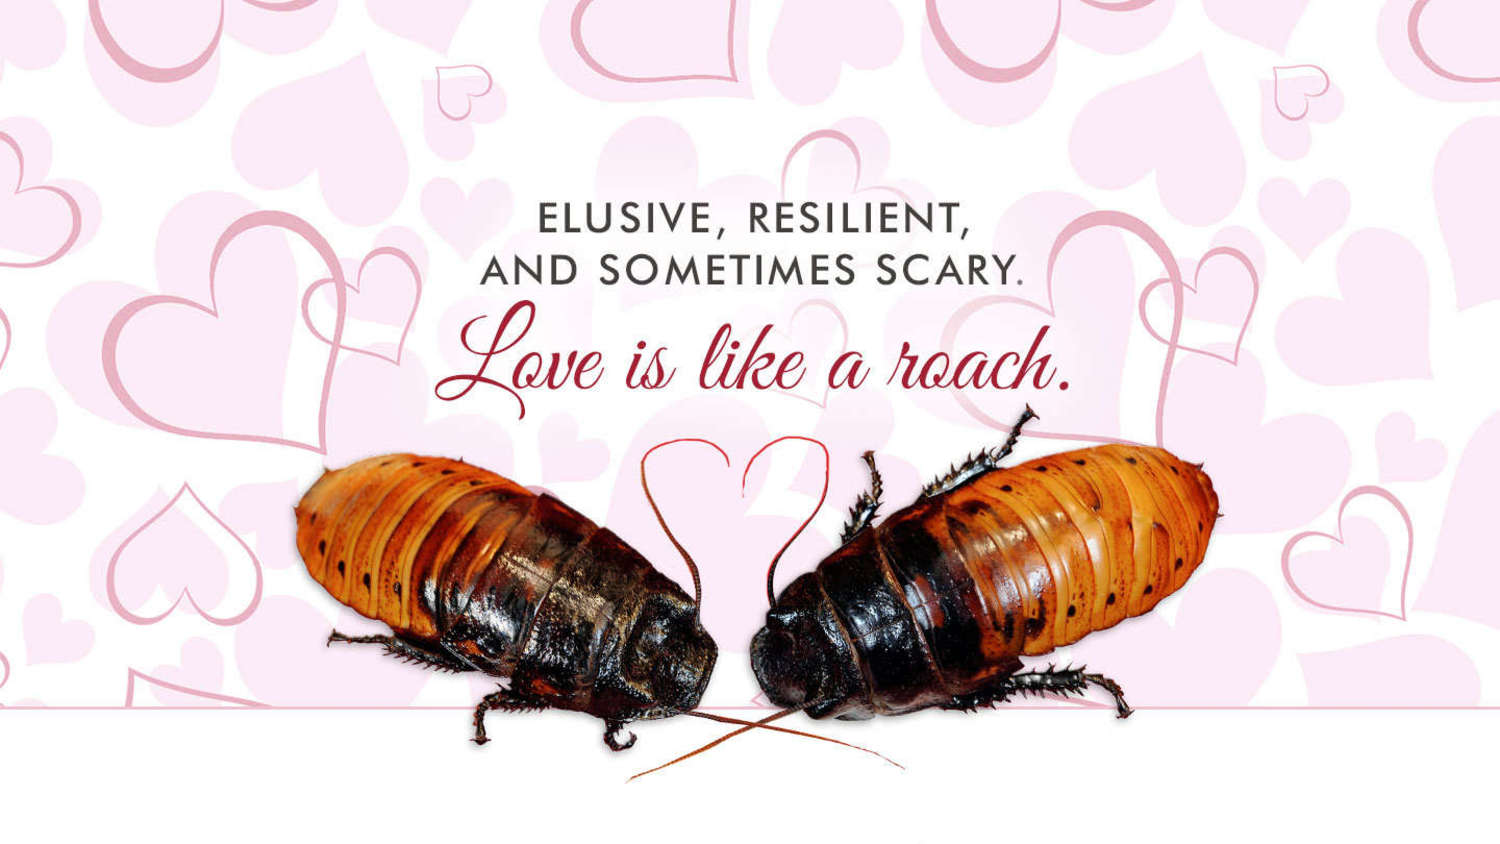 Elusive, Resilient, and Sometimes Scary. Love is Like a Roach.